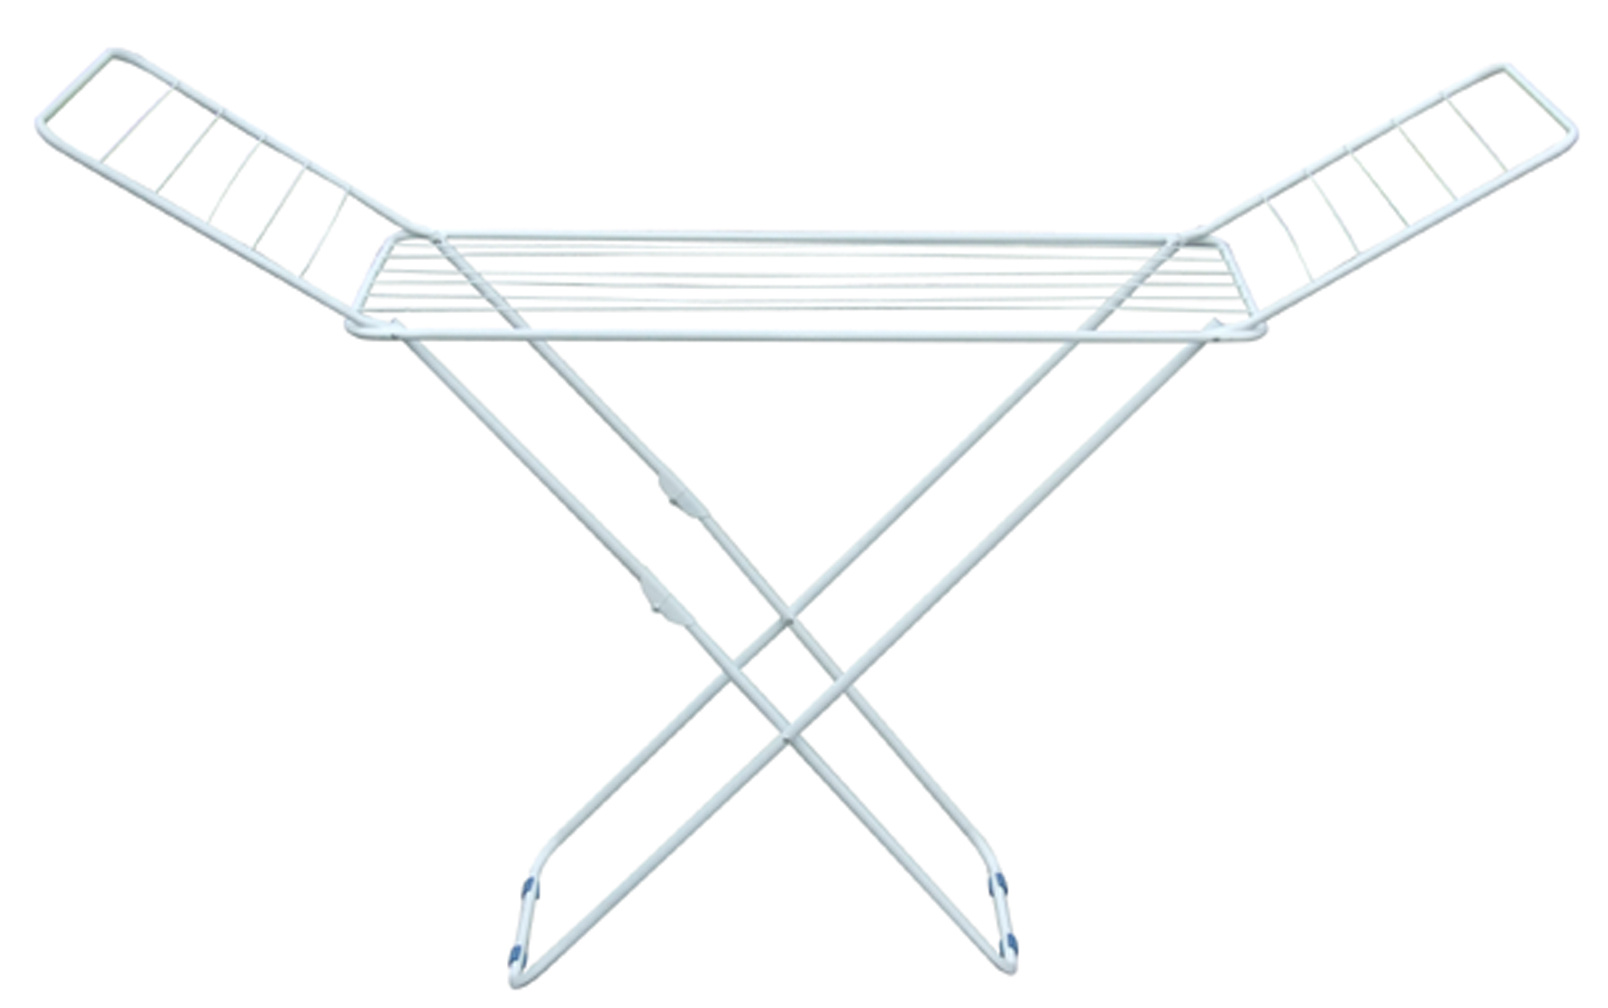 China Clotheshorse Clothes Dryer Drying Rack Coat Rack Dr101 China Clothes Horse Clothes Dryer